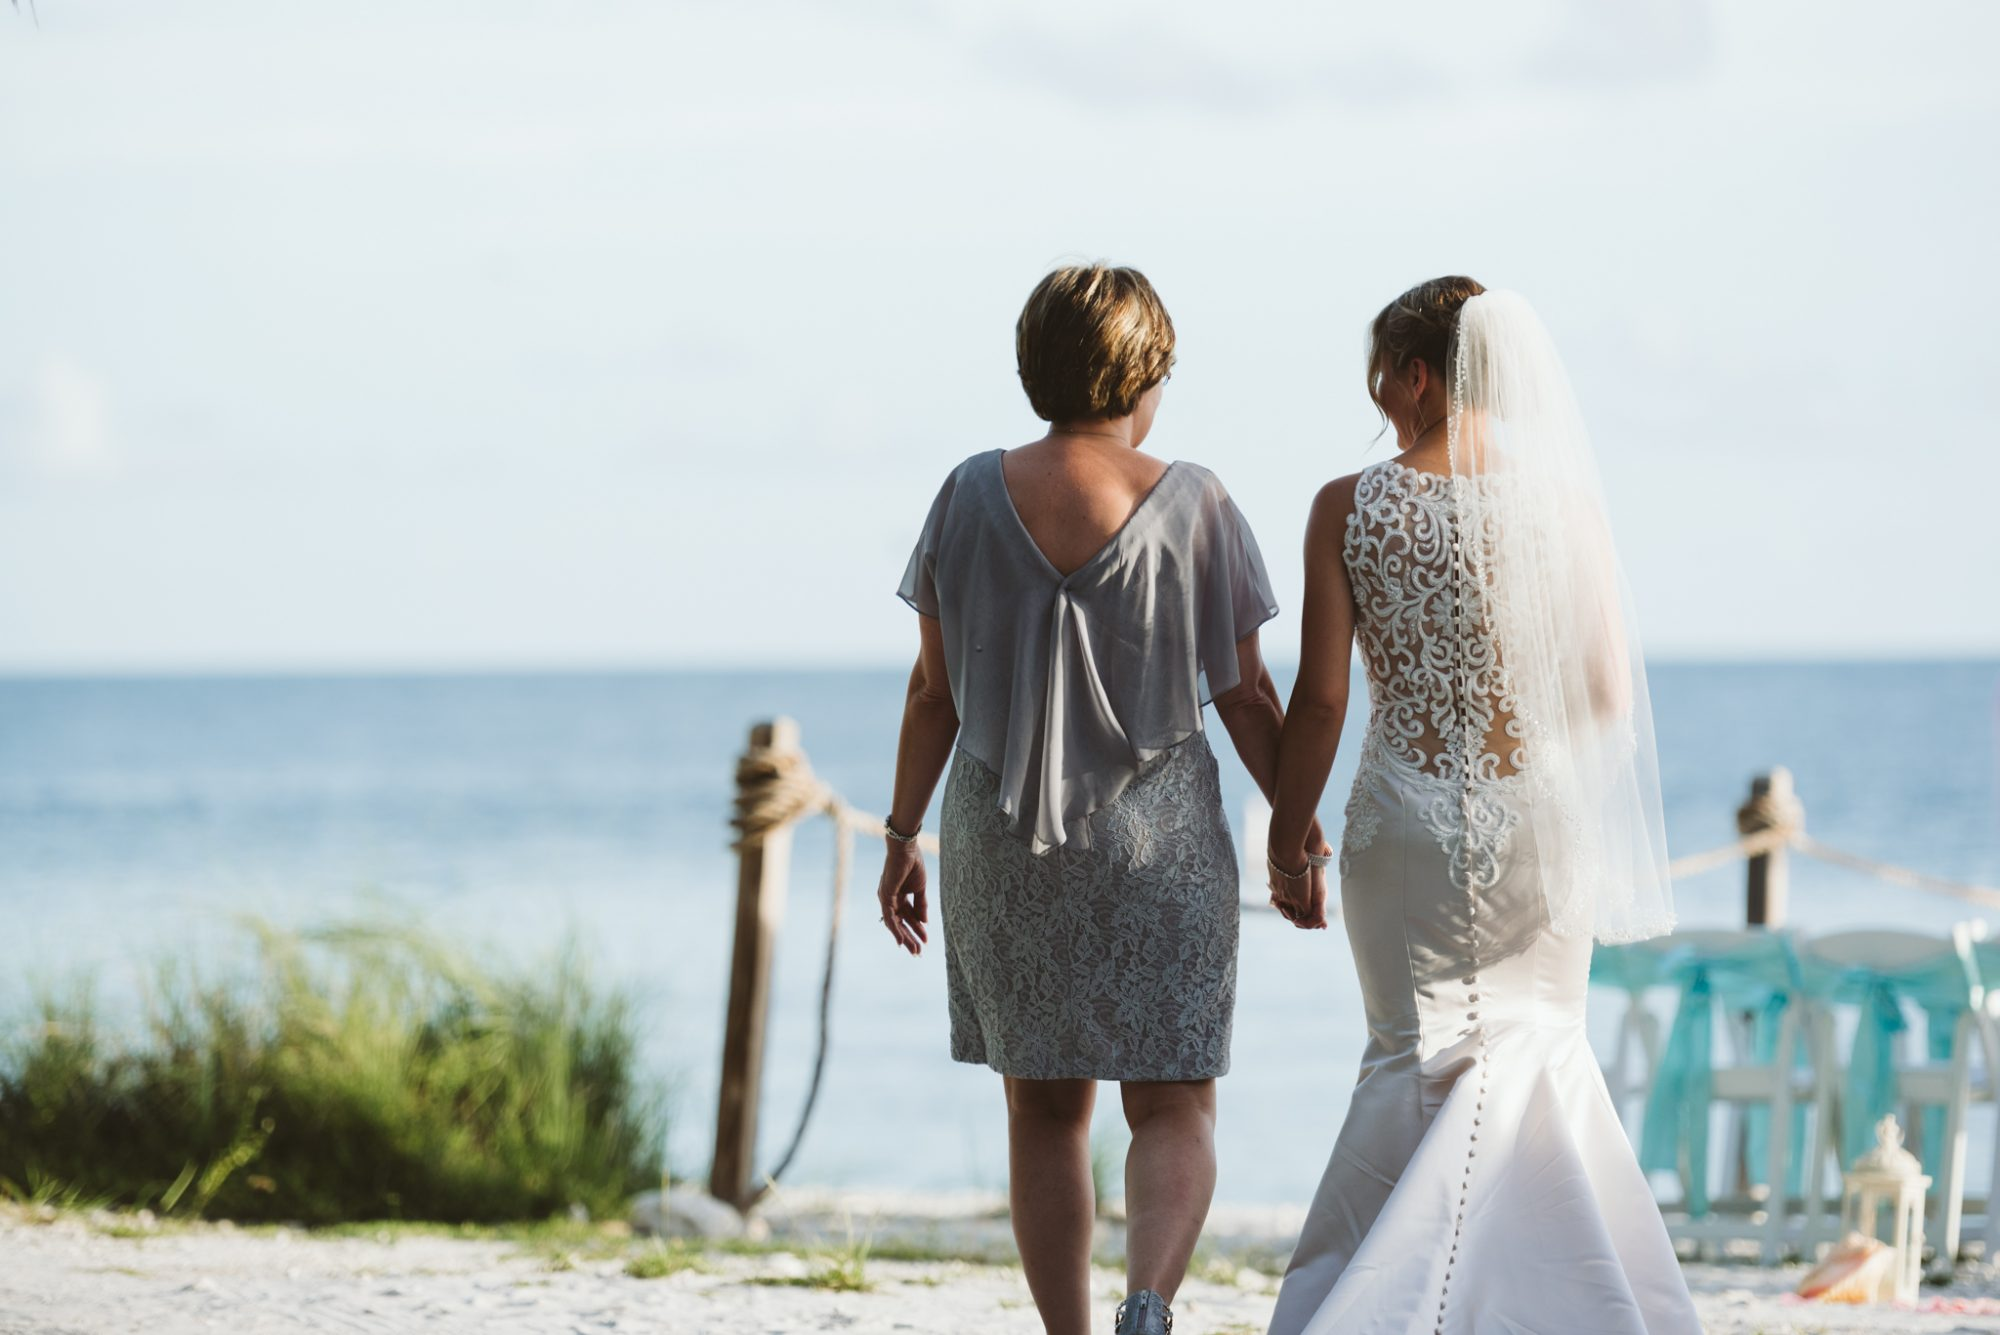 Fort Zachary Taylor Wedding12 - Kara & Ryan | Key West Wedding Photographer | Fort Zachary Taylor Wedding